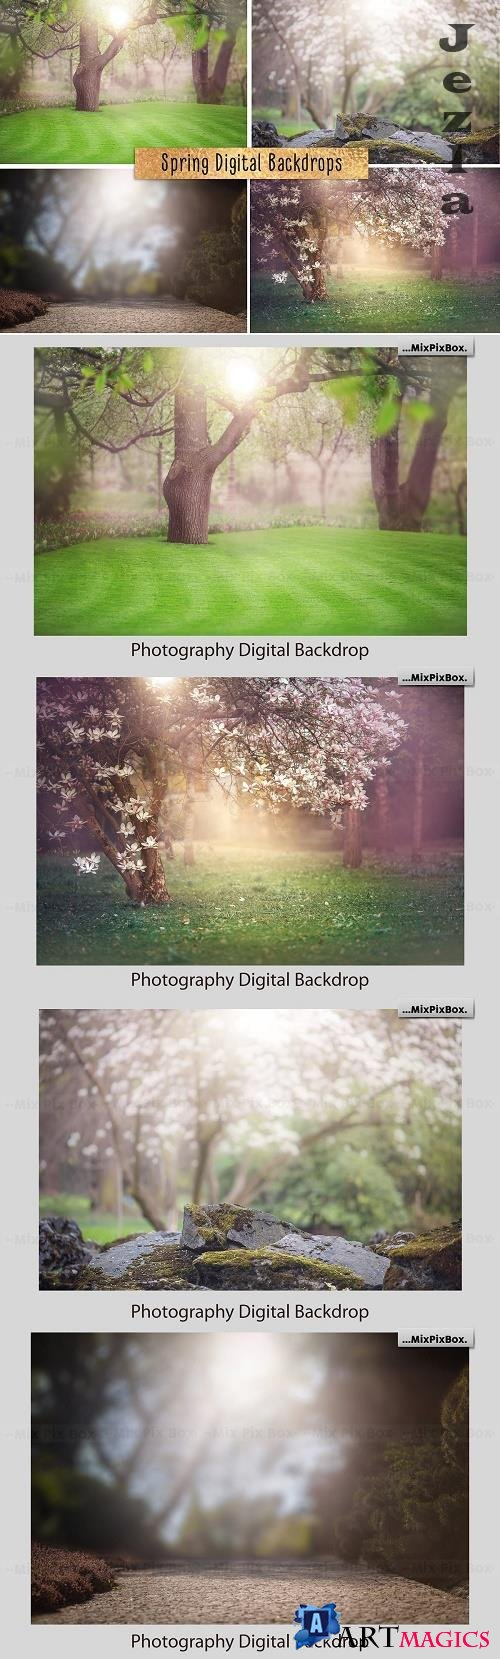 Spring Digital Backdrop - 4858985